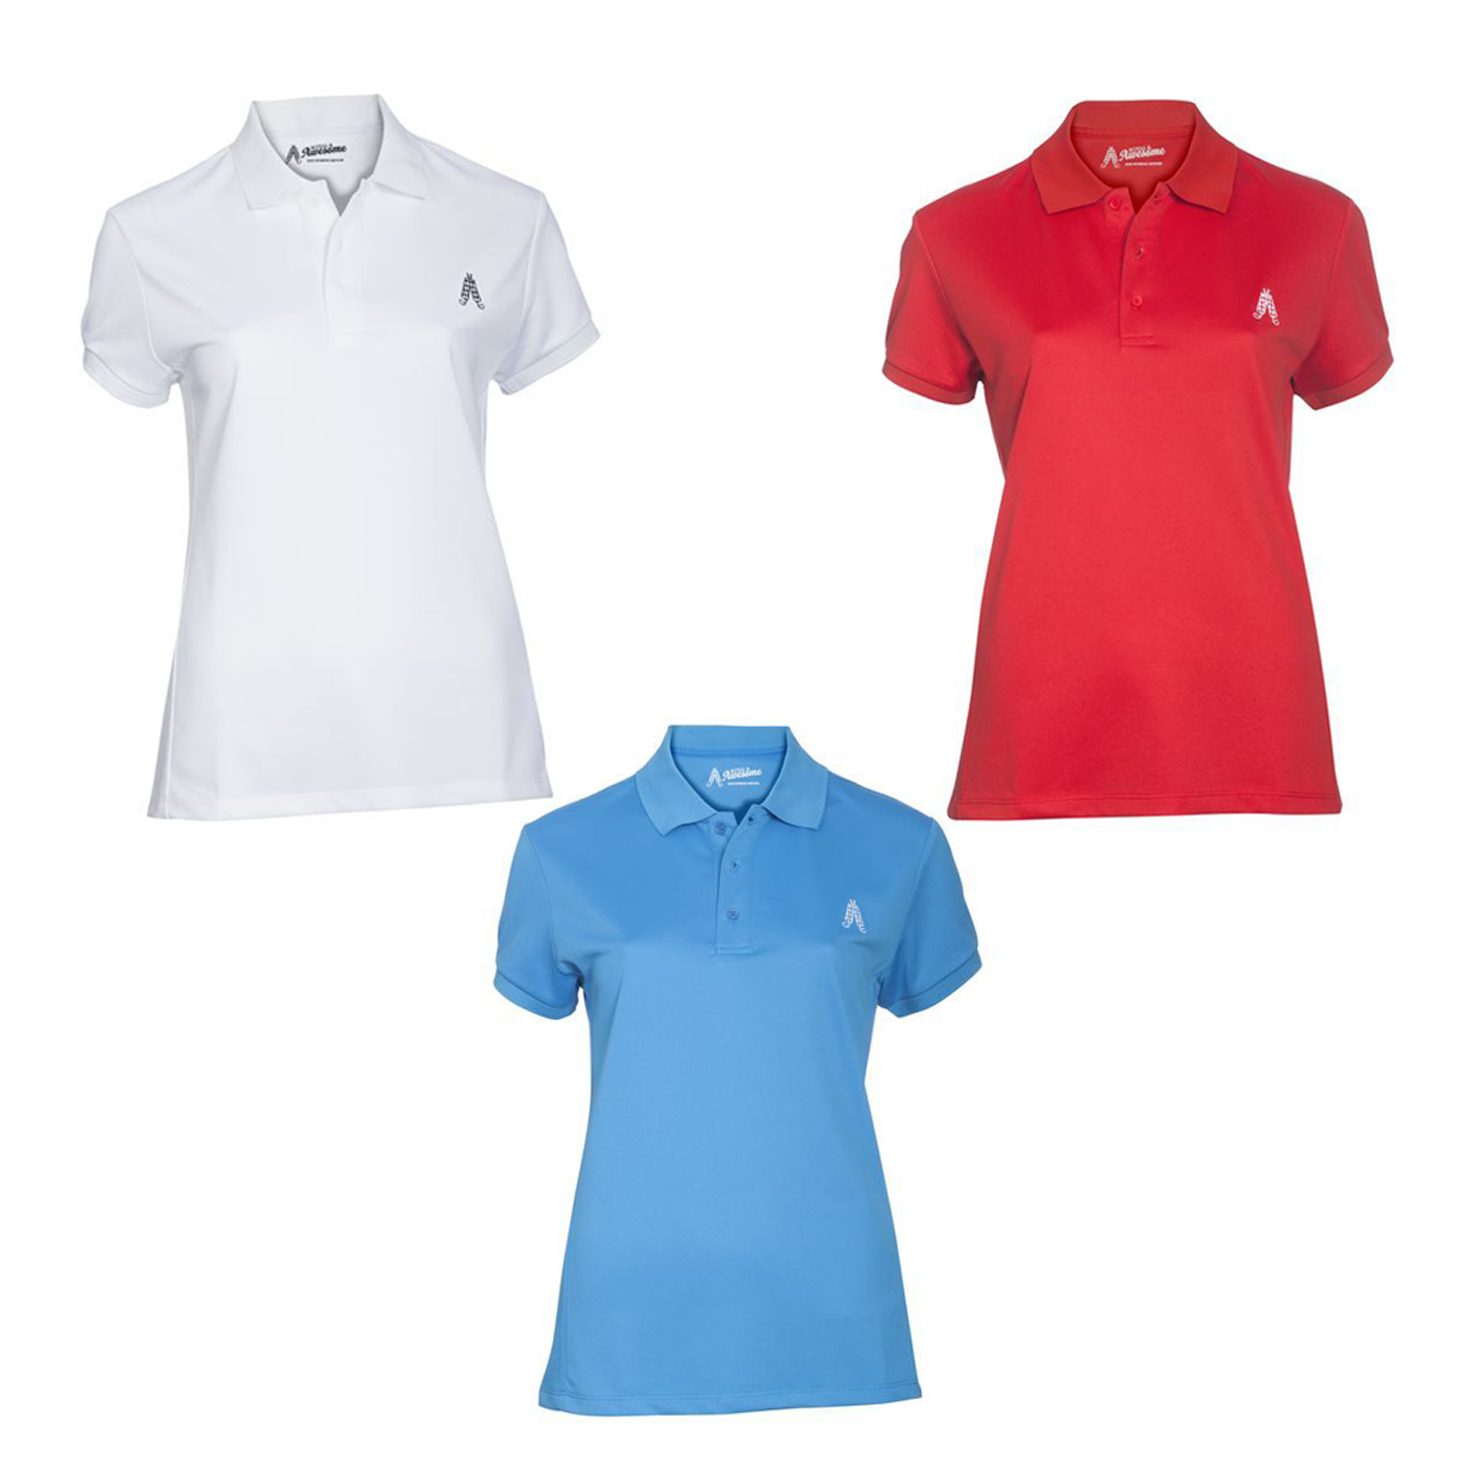 womens golf polo shirt by royal and awesome 3 colours